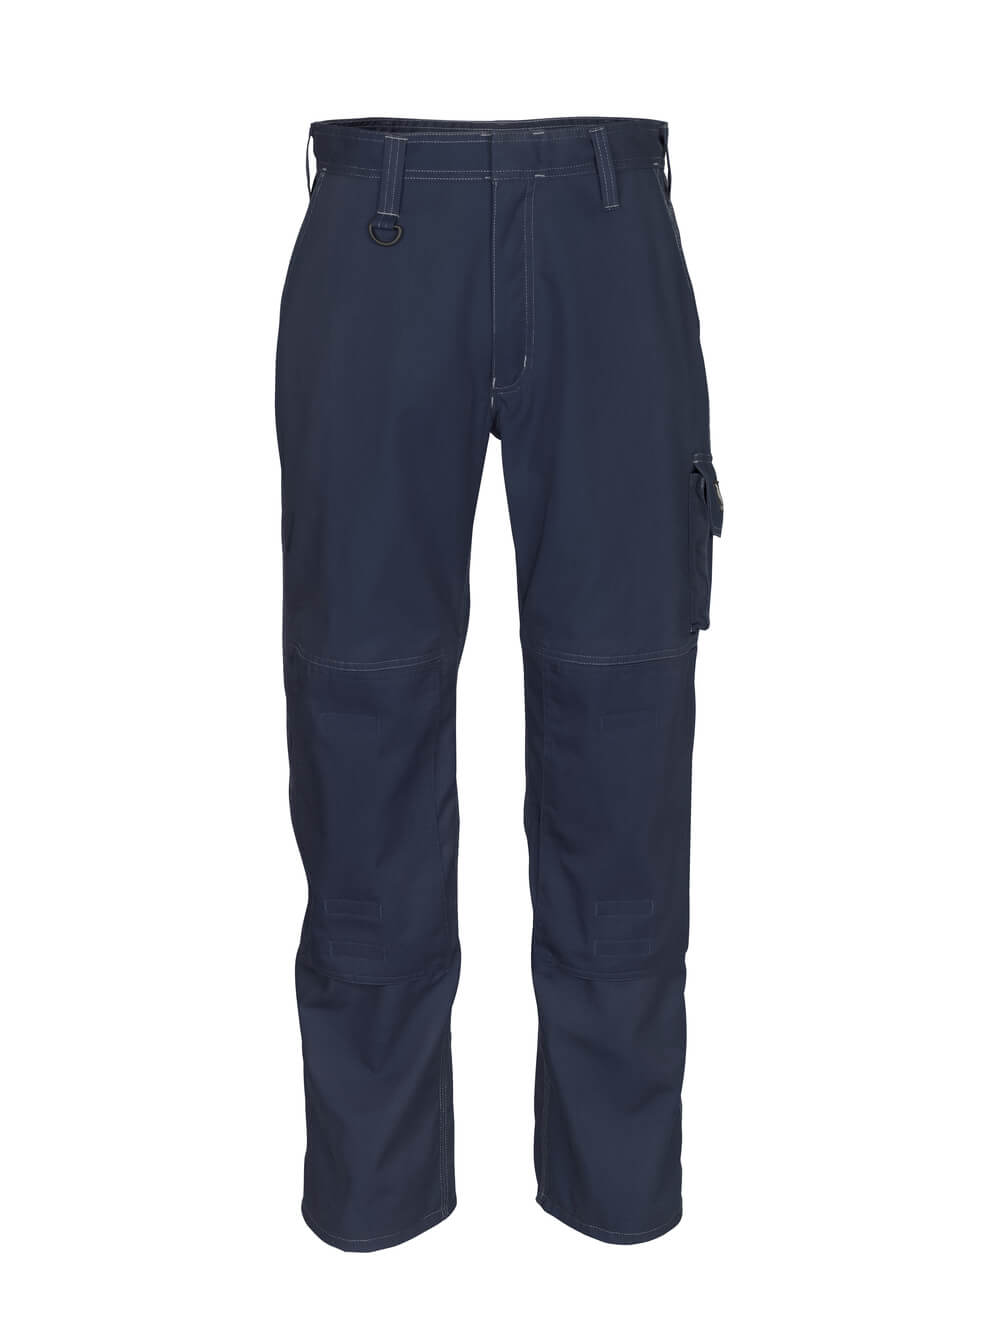 12355-630-010 Trousers with kneepad pockets - dark navy